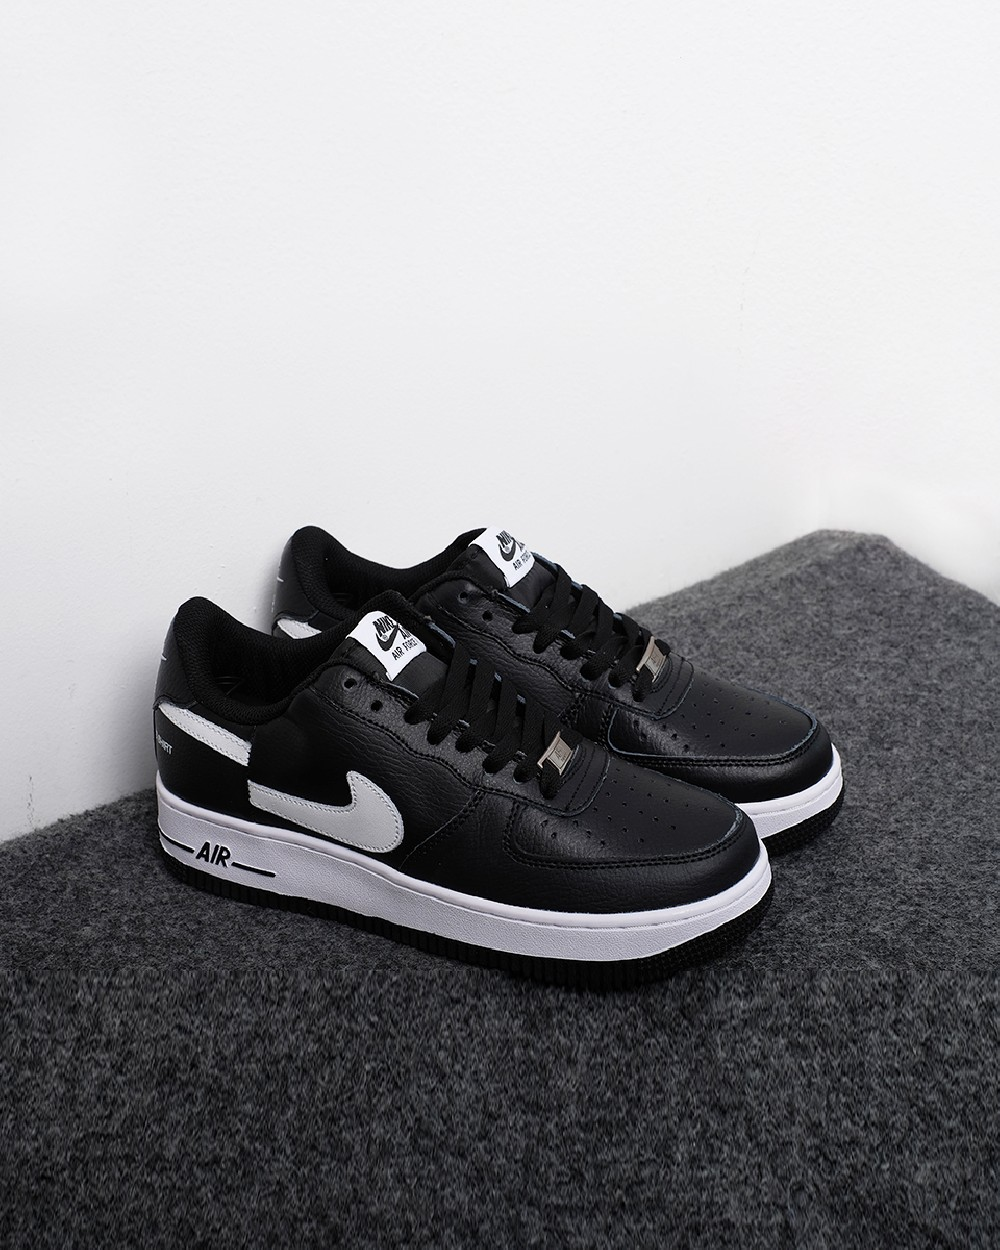 size 40 1367f 0442f Air Force 1 Low Supreme x Comme des Garcons (2018) - Black ...